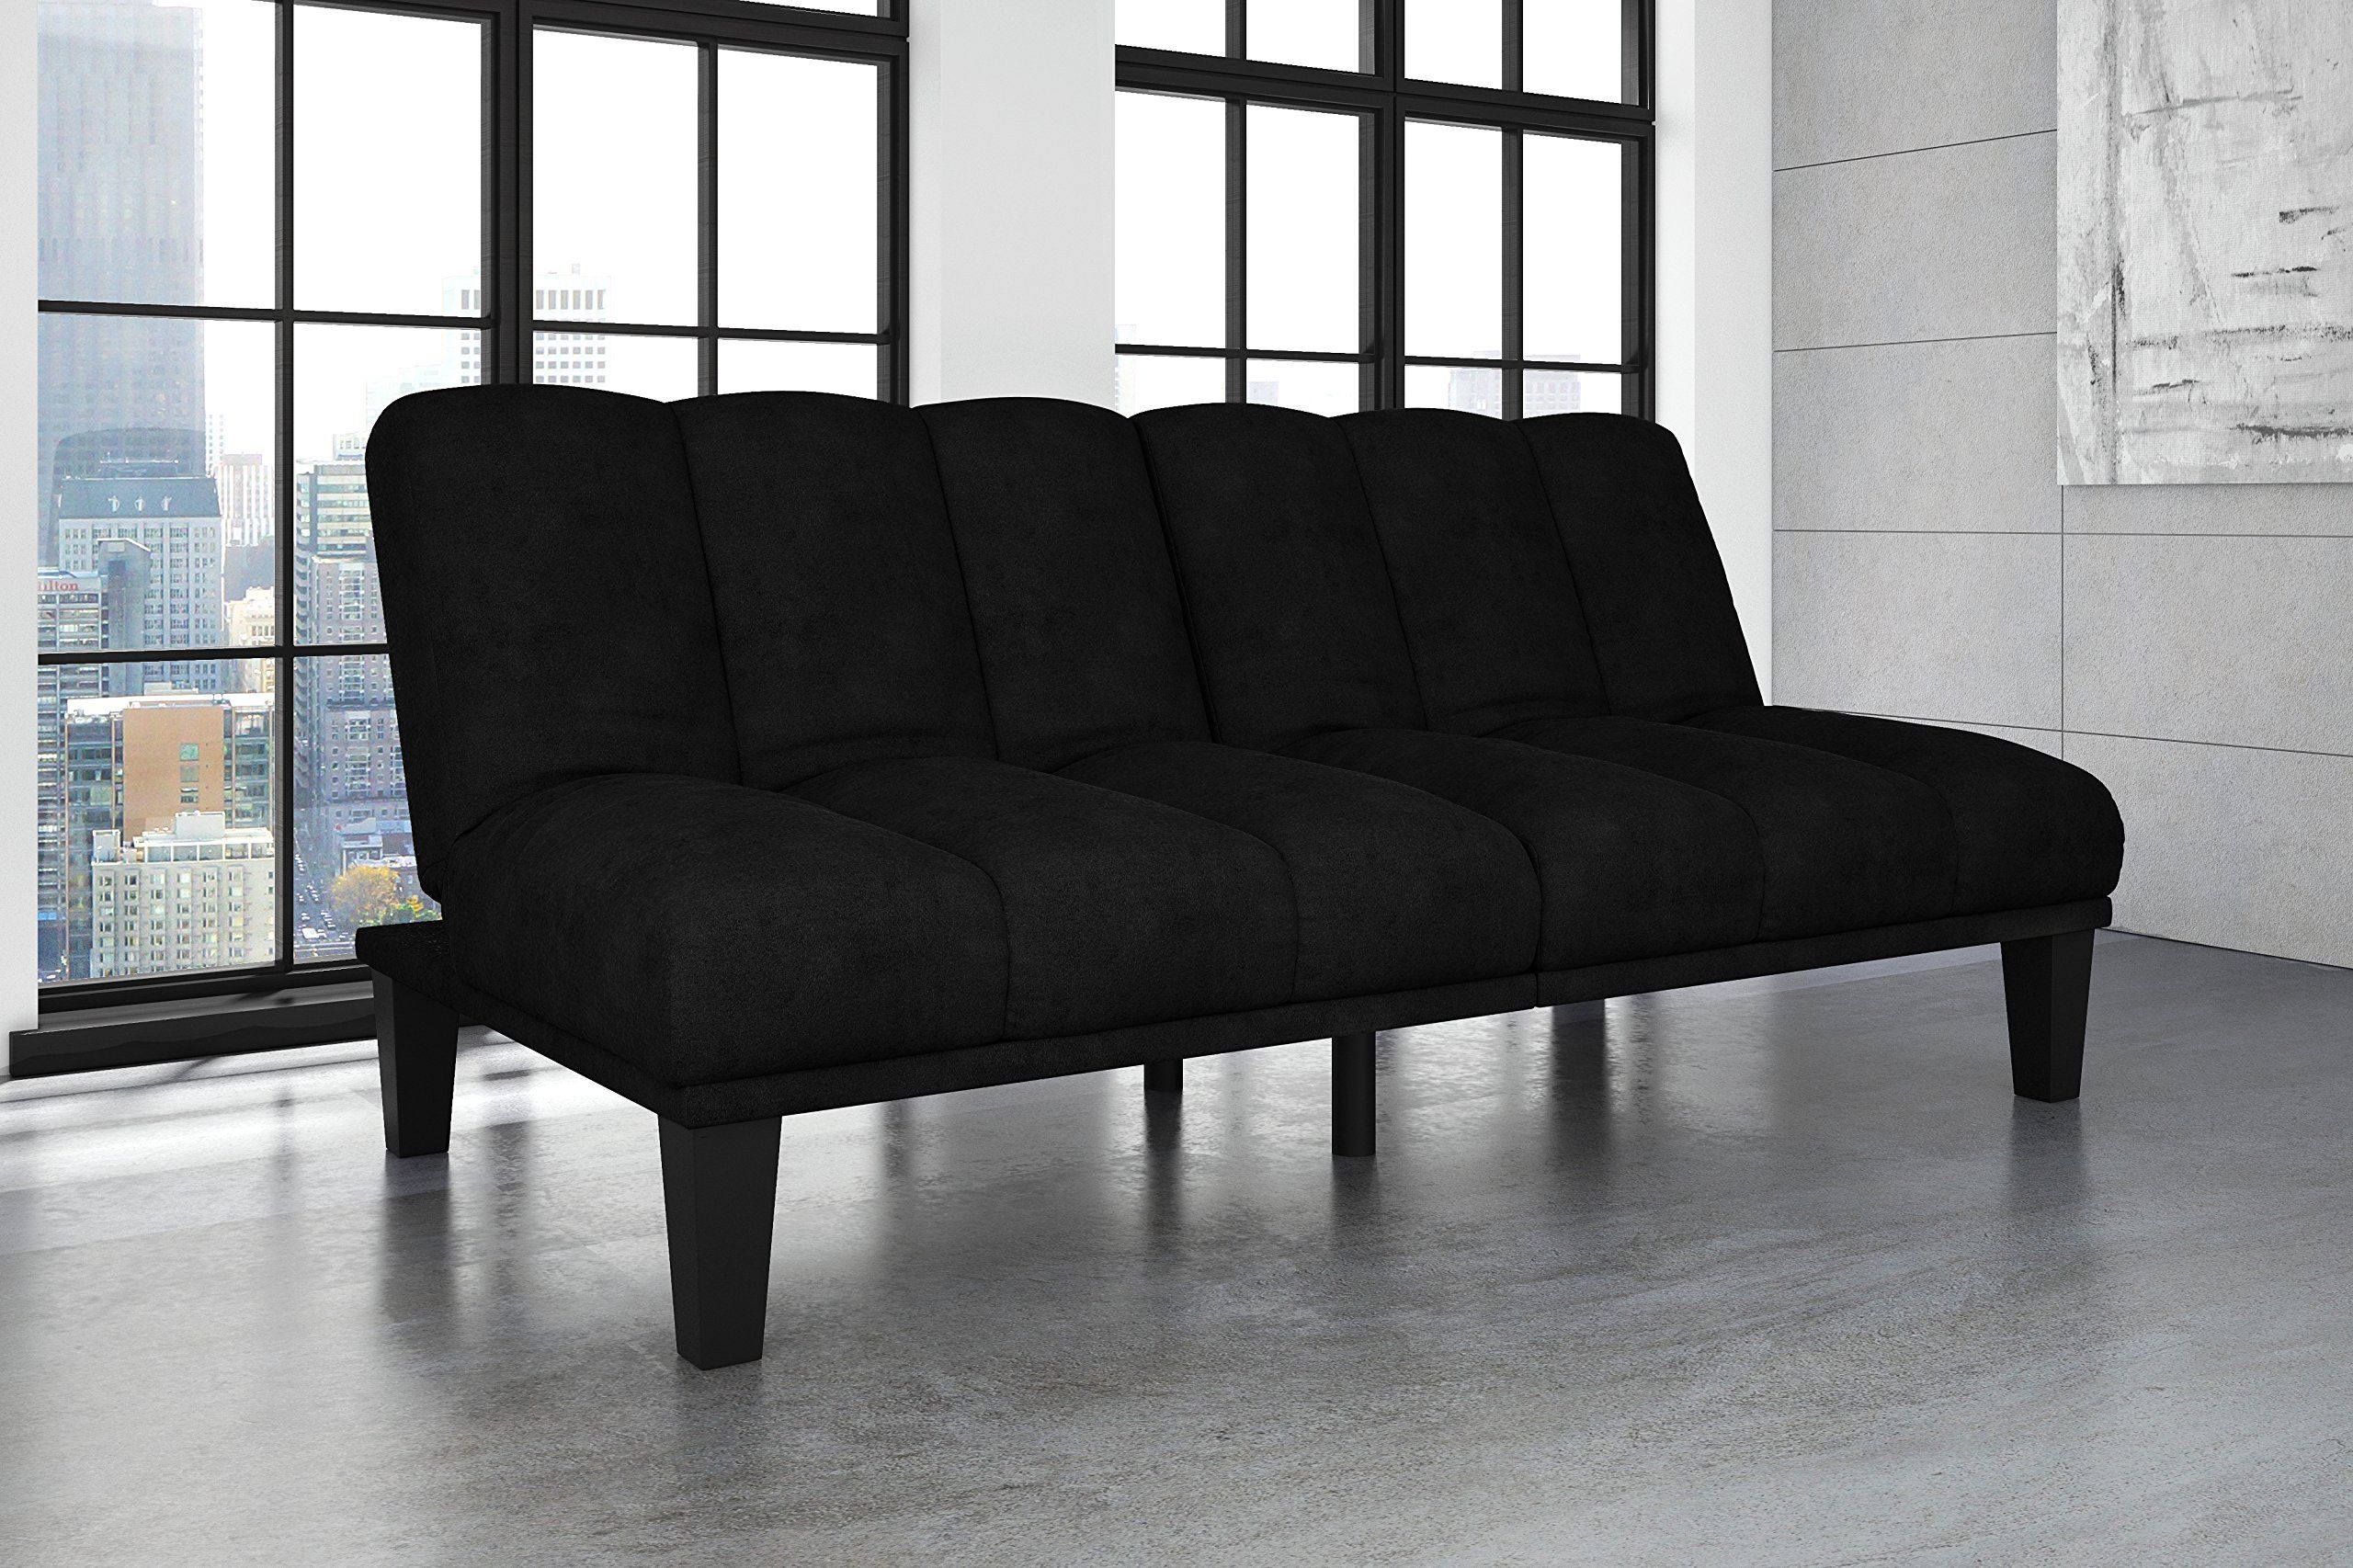 Hamilton Estate Premium Sofa Futon Sleeper Comfortable Plush Upholstery Rich Black You Can Find More Details By Visiting The Image Link